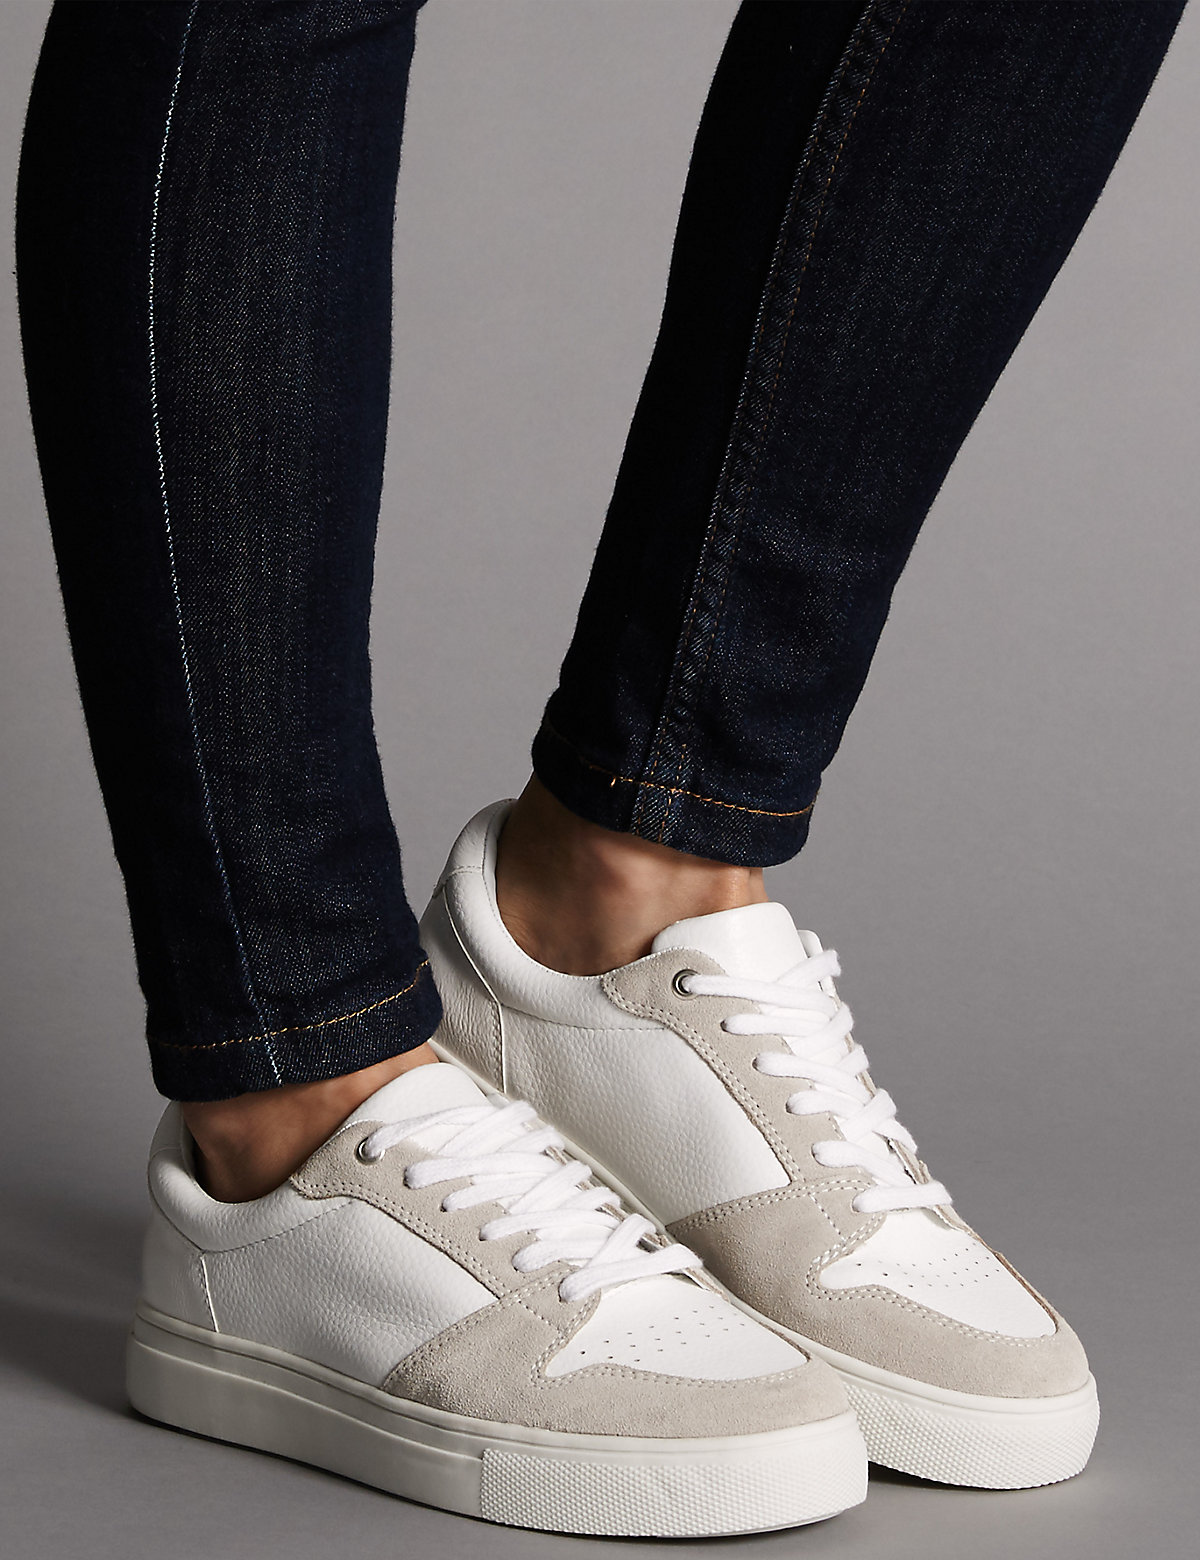 Autograph Lace Up Trainers with Insolia Flex